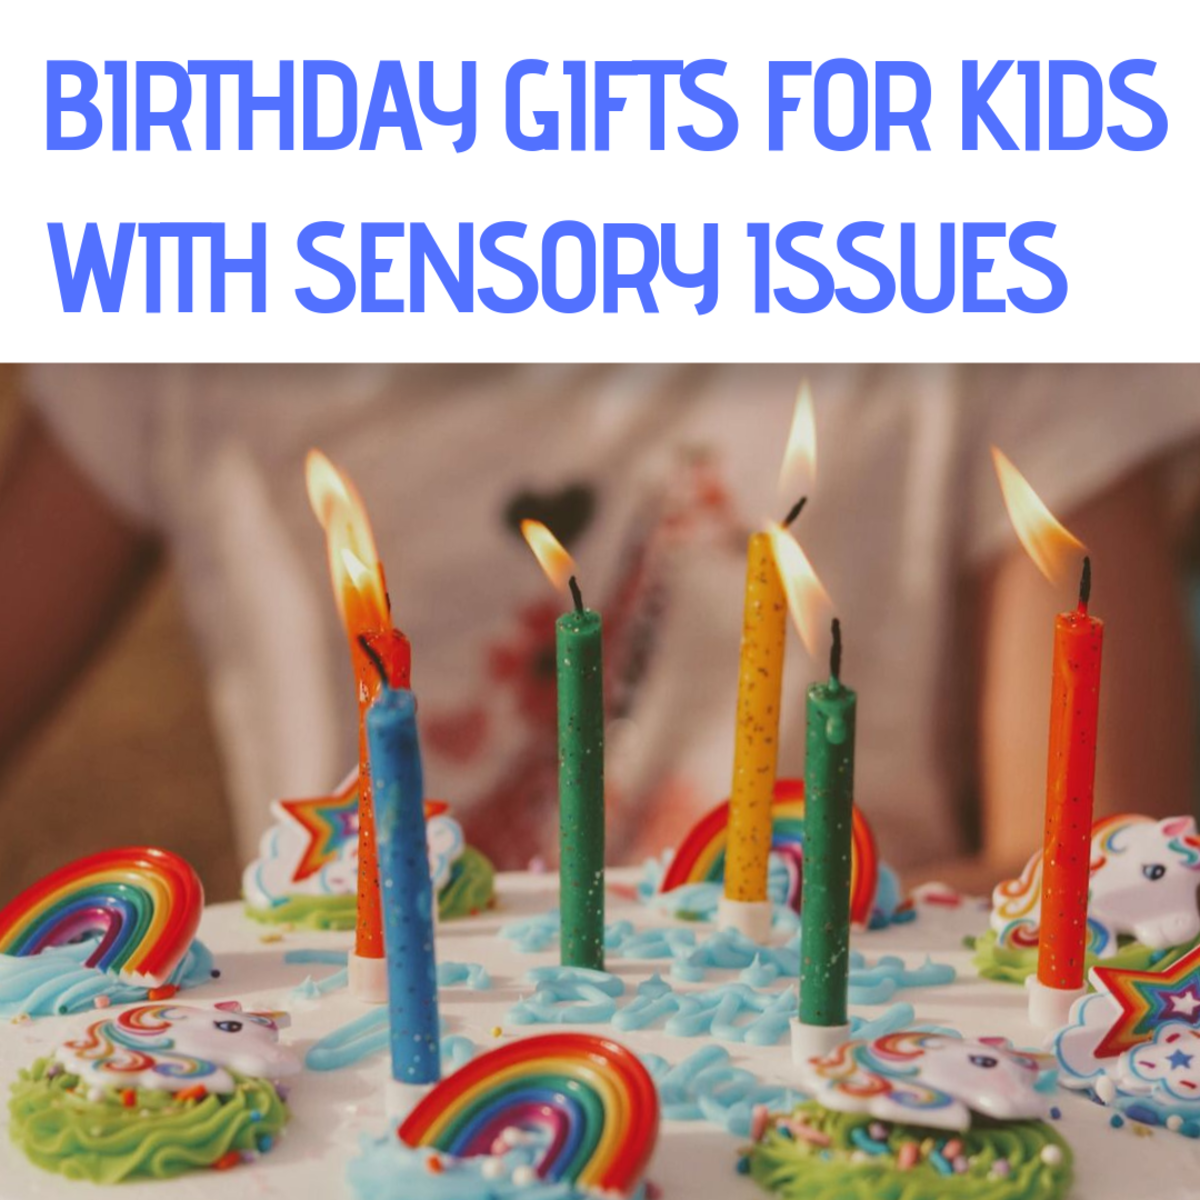 Birthday Gift Ideas for Kids With Sensory Issues